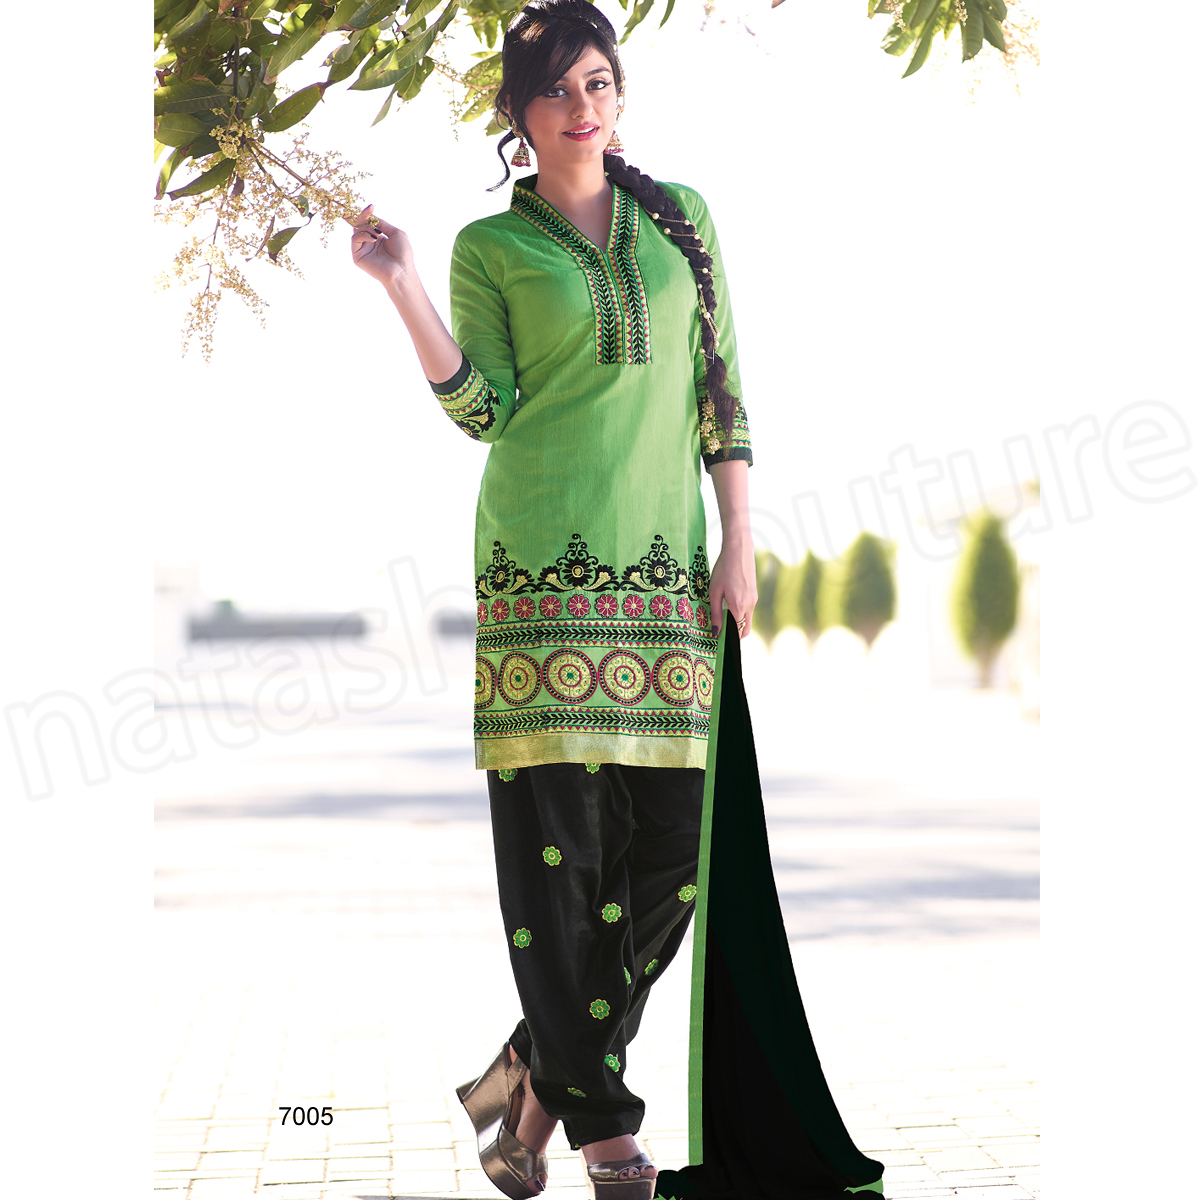 Latest Indian Patiala shalwar kameez fashion 2015-2016 (19)